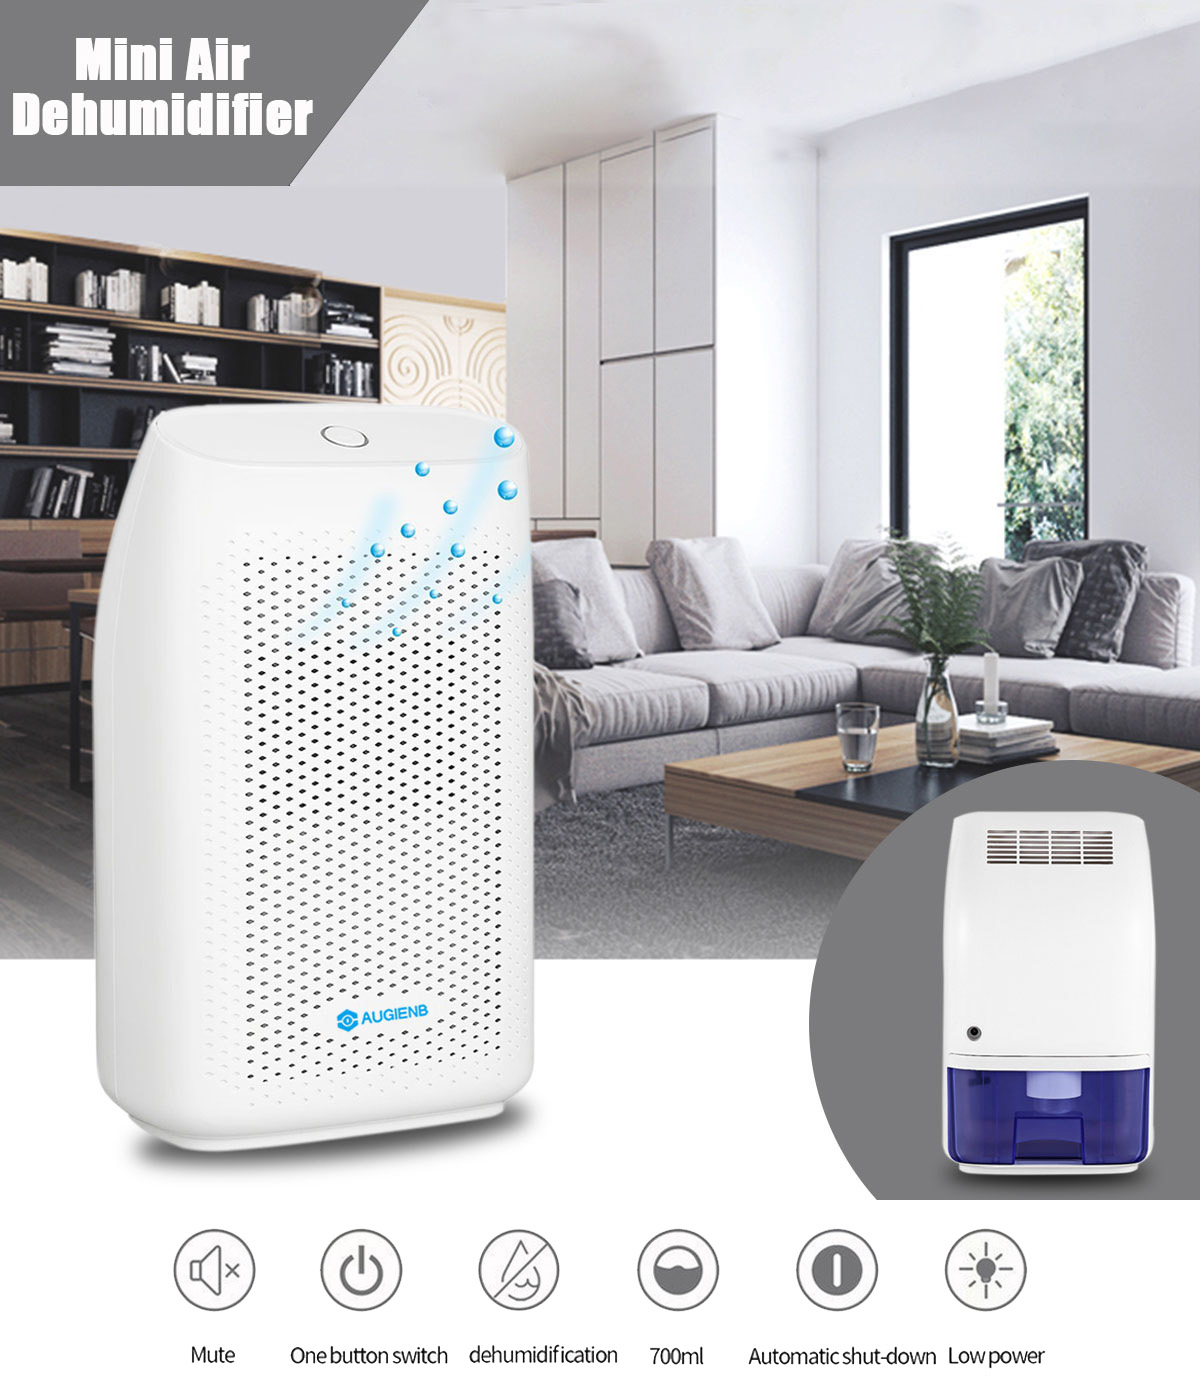 Augienb Mini Air Dehumidifier 700ml Compact And Portable Whisper Quiet Dehumidifier Air Dryer